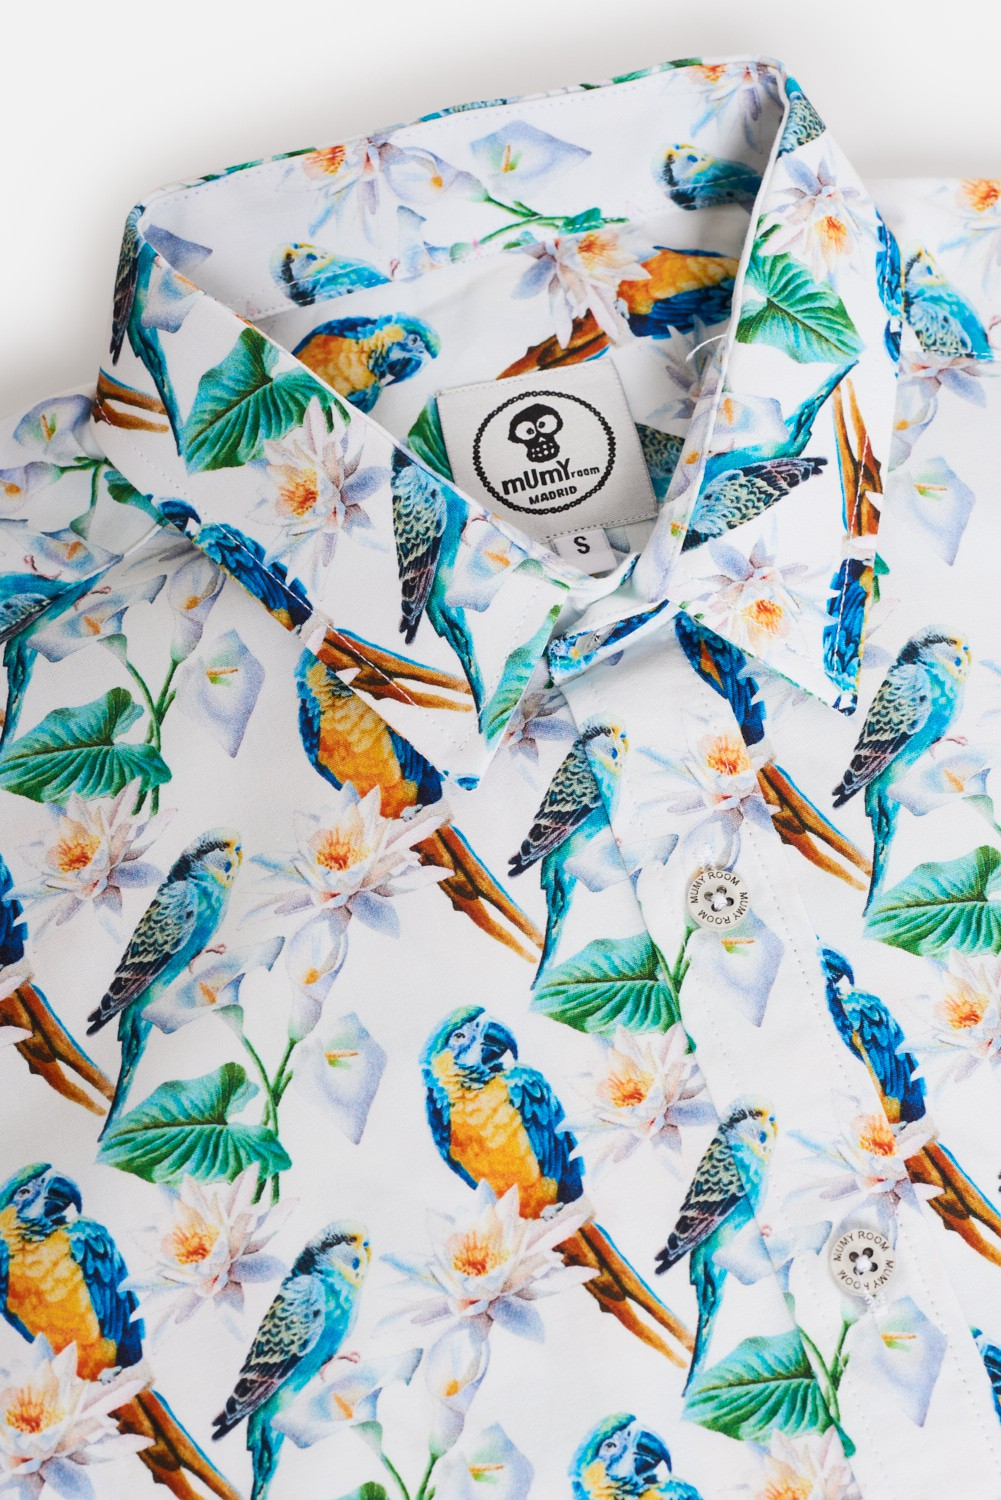 KID'S PRINTED SHIRT PARROT PERICO